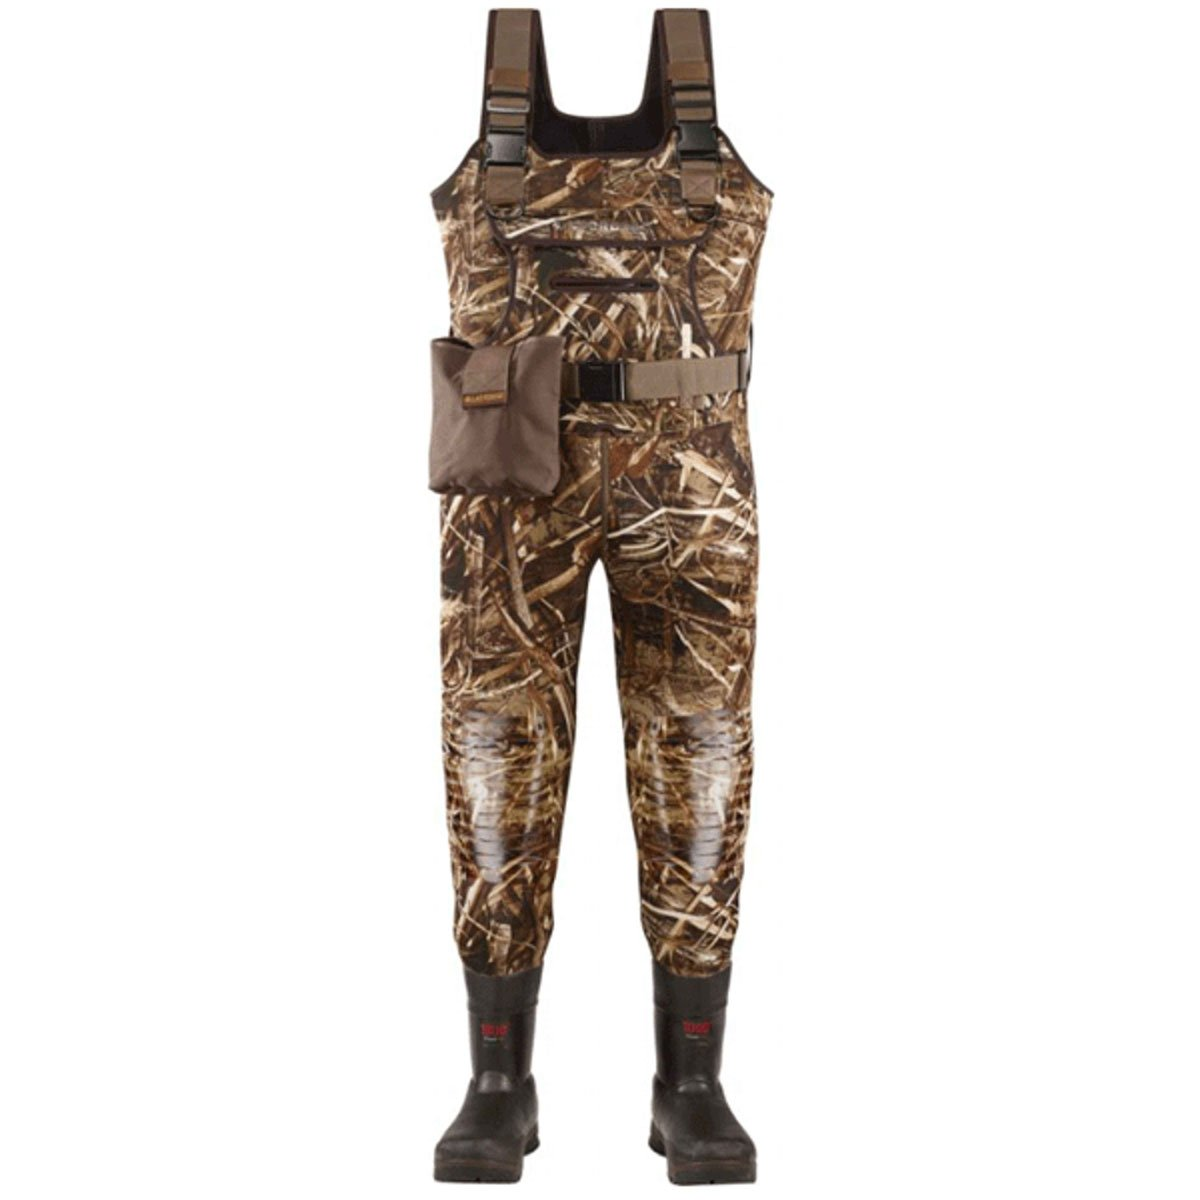 Lacrosse Swamp Tuff Pro Bottom Land 1000 – グラムThinsulate Ultra Insulation Waders B00M19KNIW 10 King|Realtree Max 5 Realtree Max 5 10 King